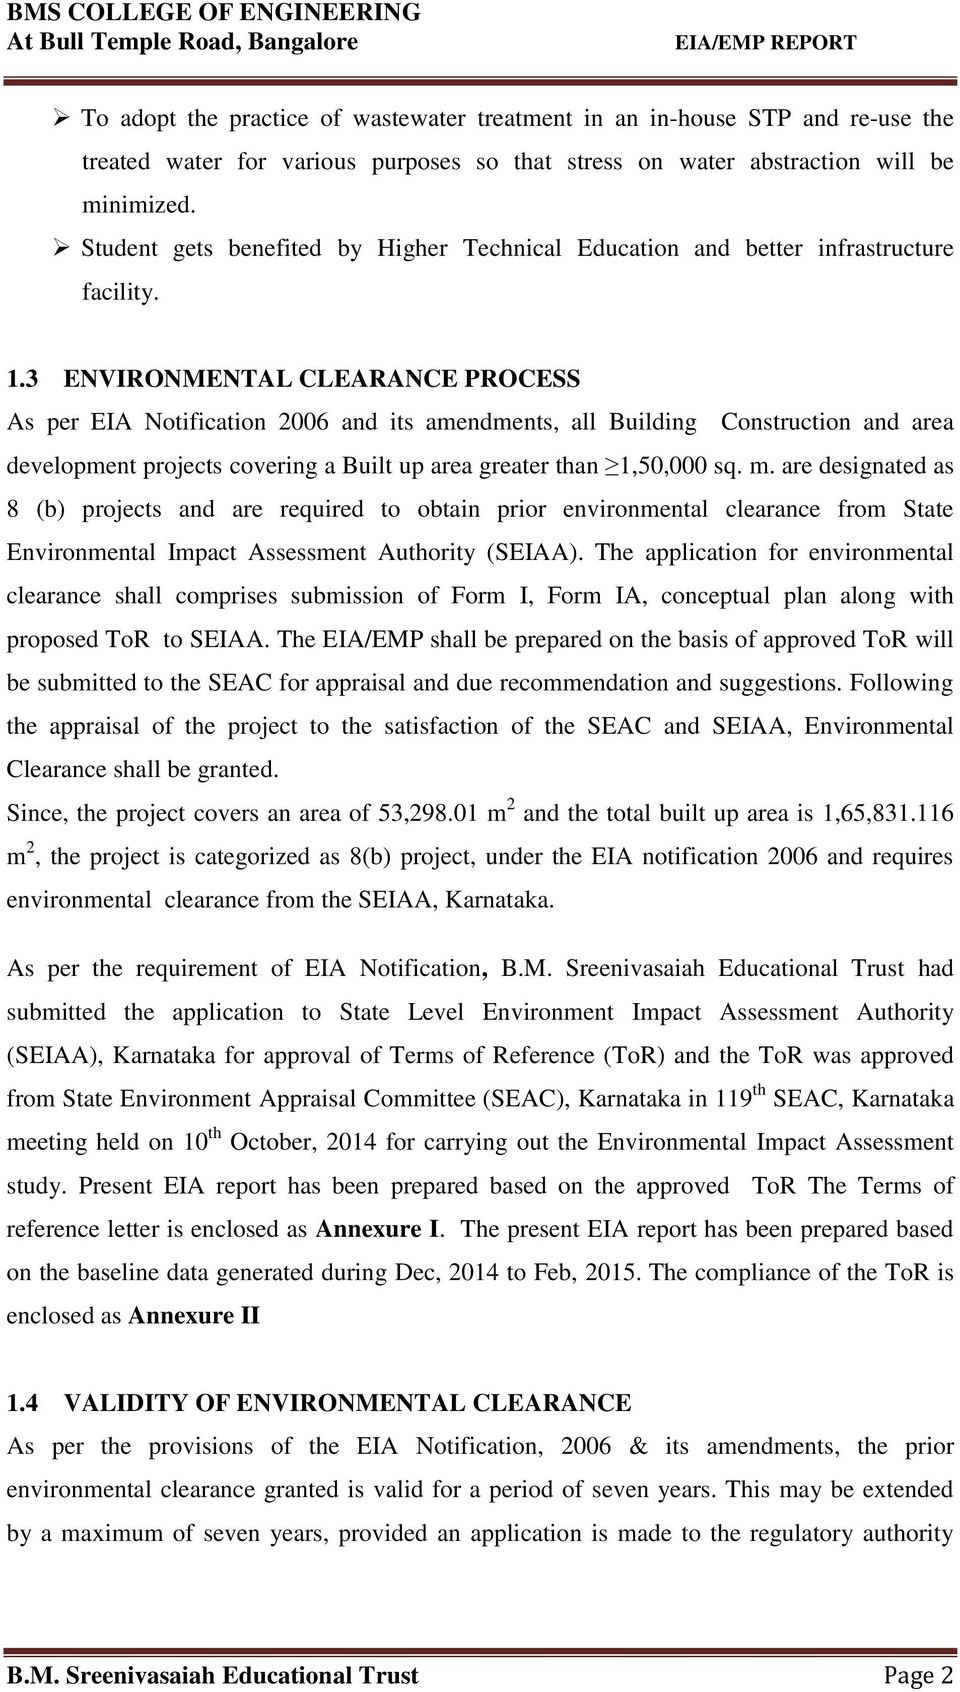 3 ENVIRONMENTAL CLEARANCE PROCESS As per EIA Notification 2006 and its amendments, all Building Construction and area development projects covering a Built up area greater than 1,50,000 sq. m.